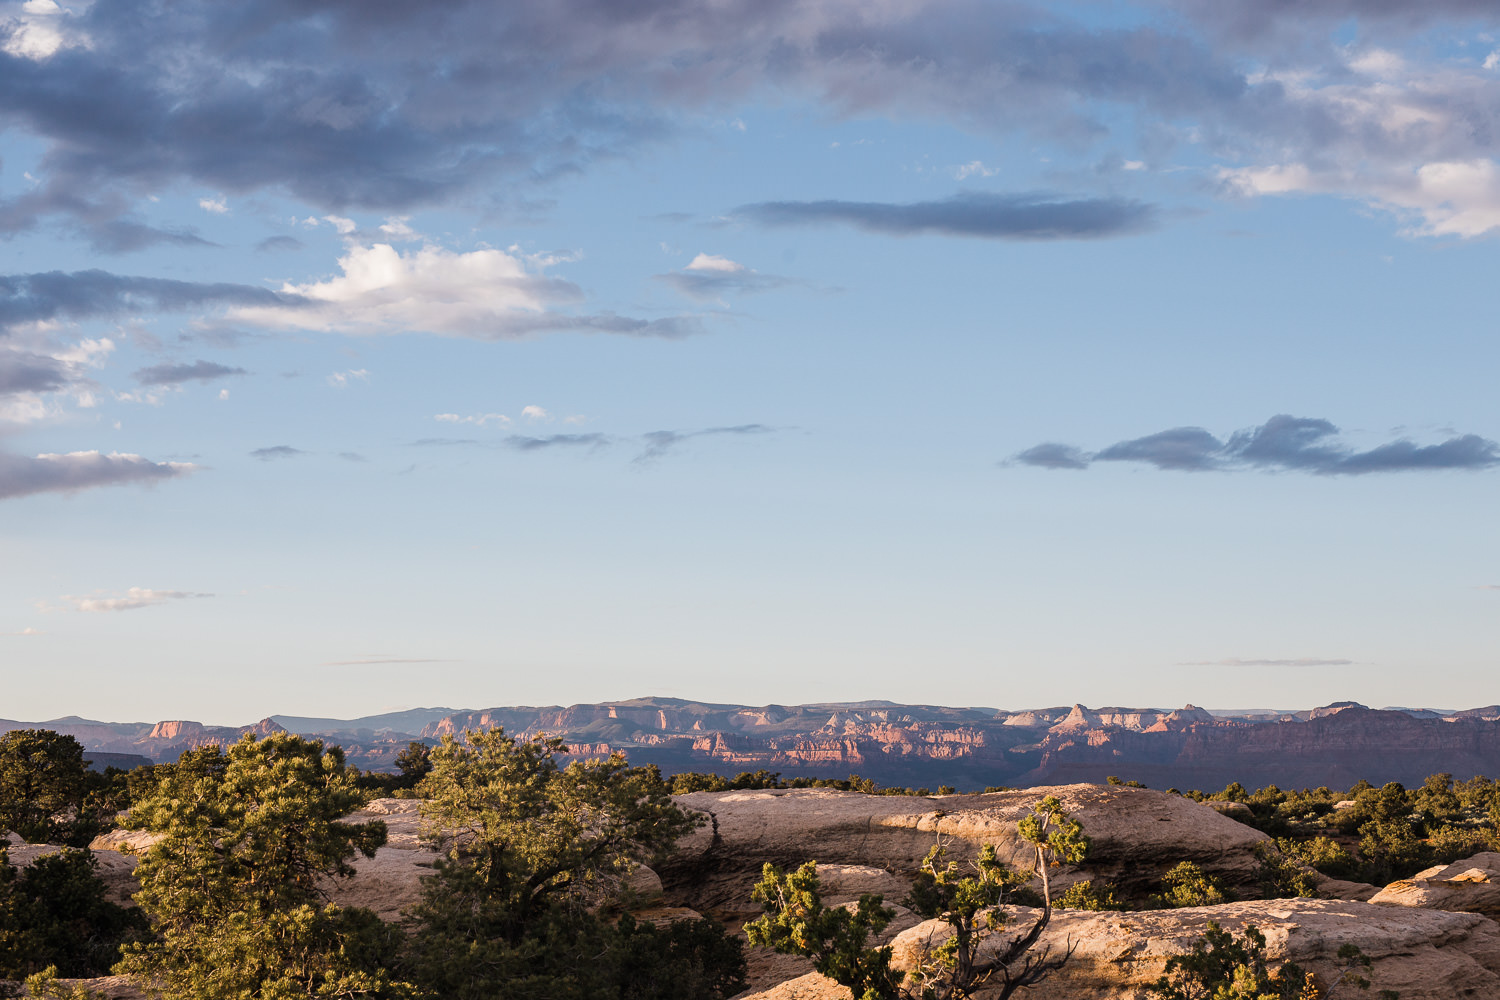 View of Zion National Park from Gooseberry Mesa